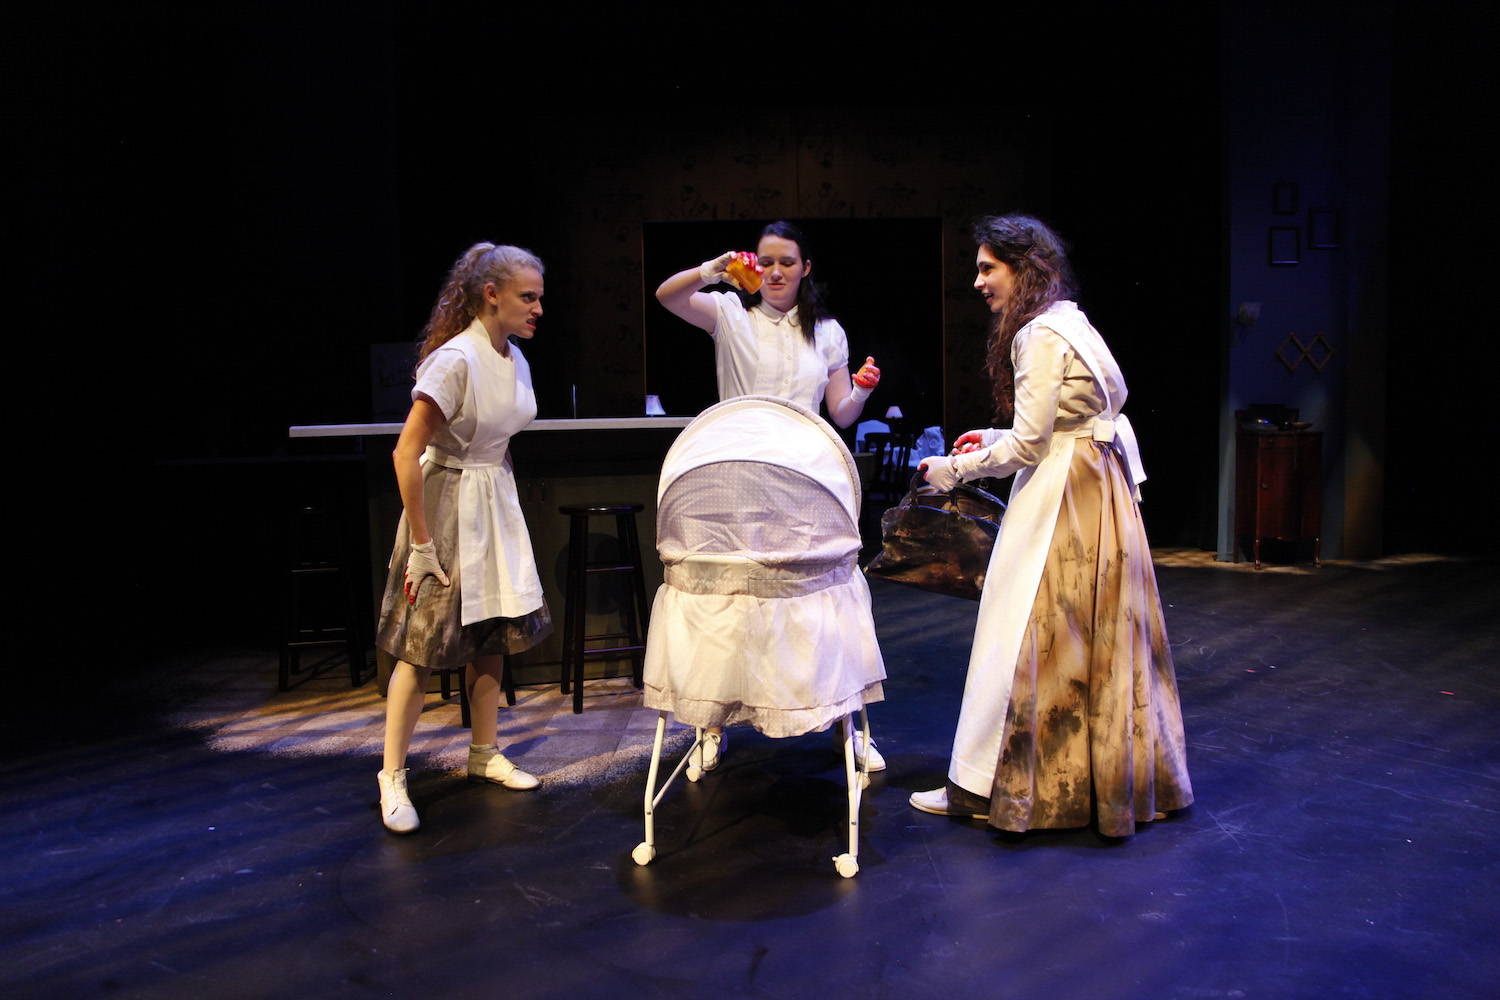 Talia Bornstein, Kylie Underwood, and Mira Kessler in MACBETH. Photo by Mark Lovett.